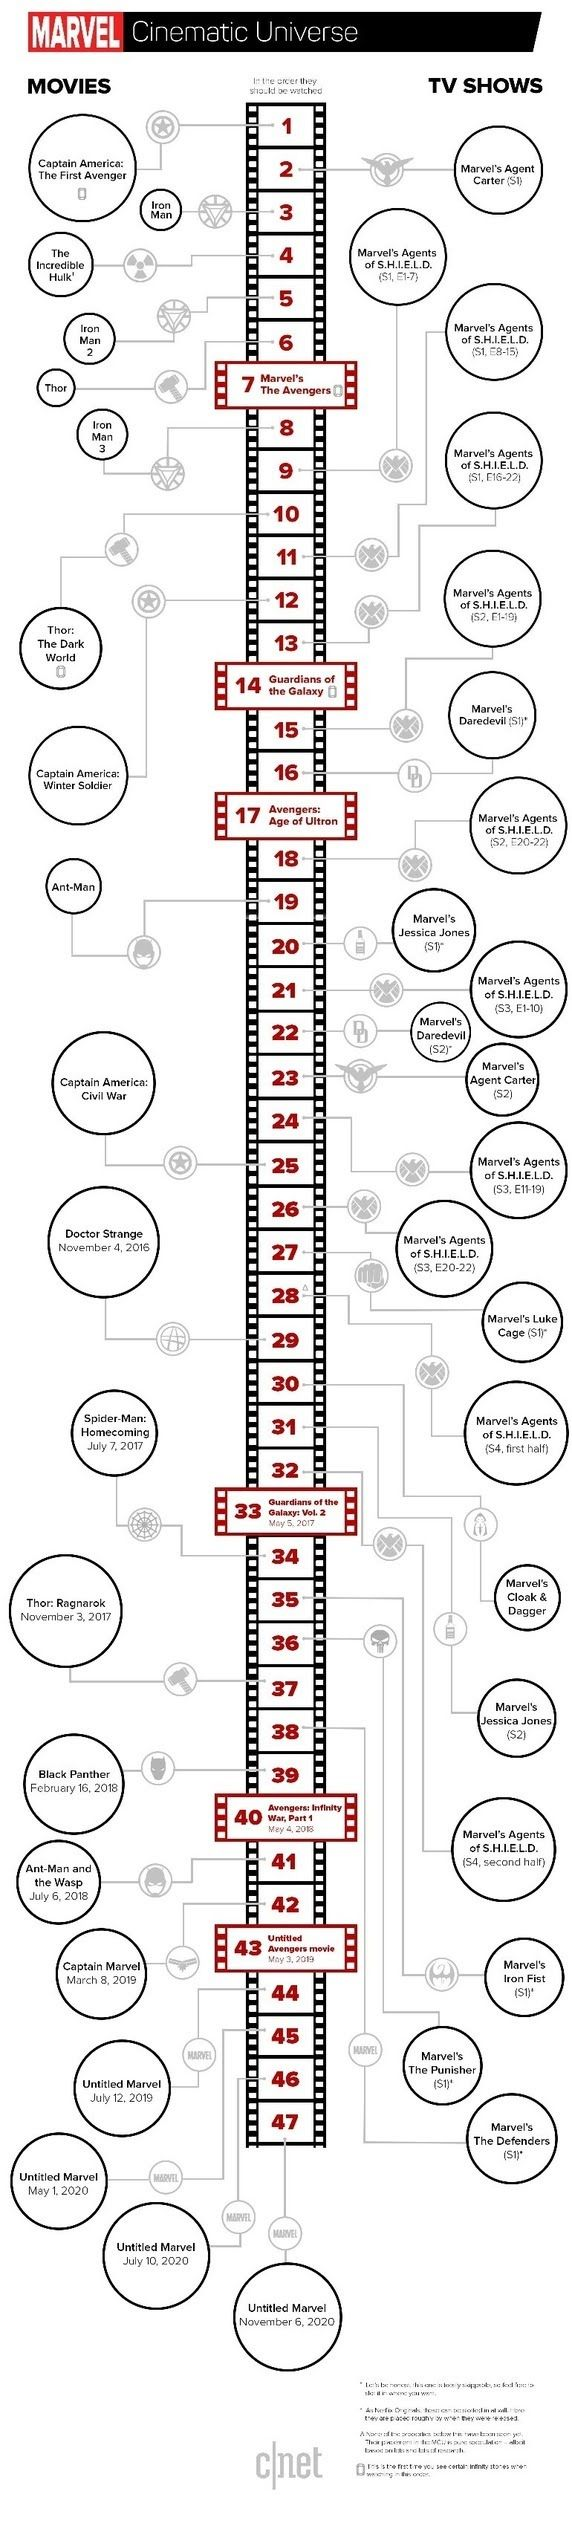 best ideas images on pinterest cool things marvel universe and